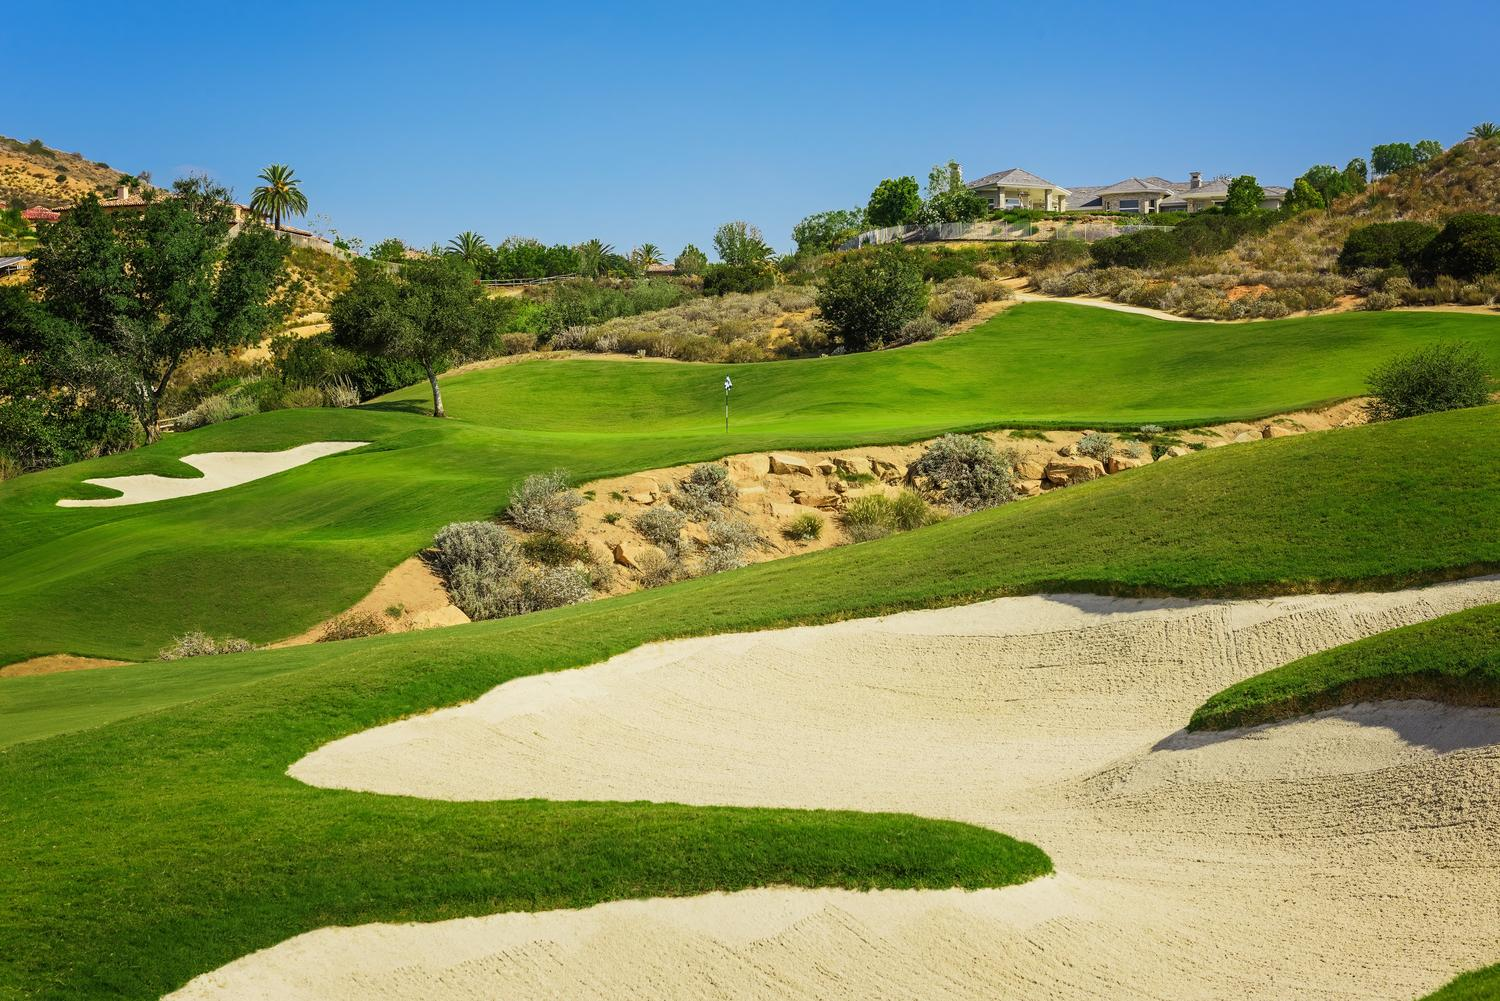 Golf Picture 2 resize.jpg